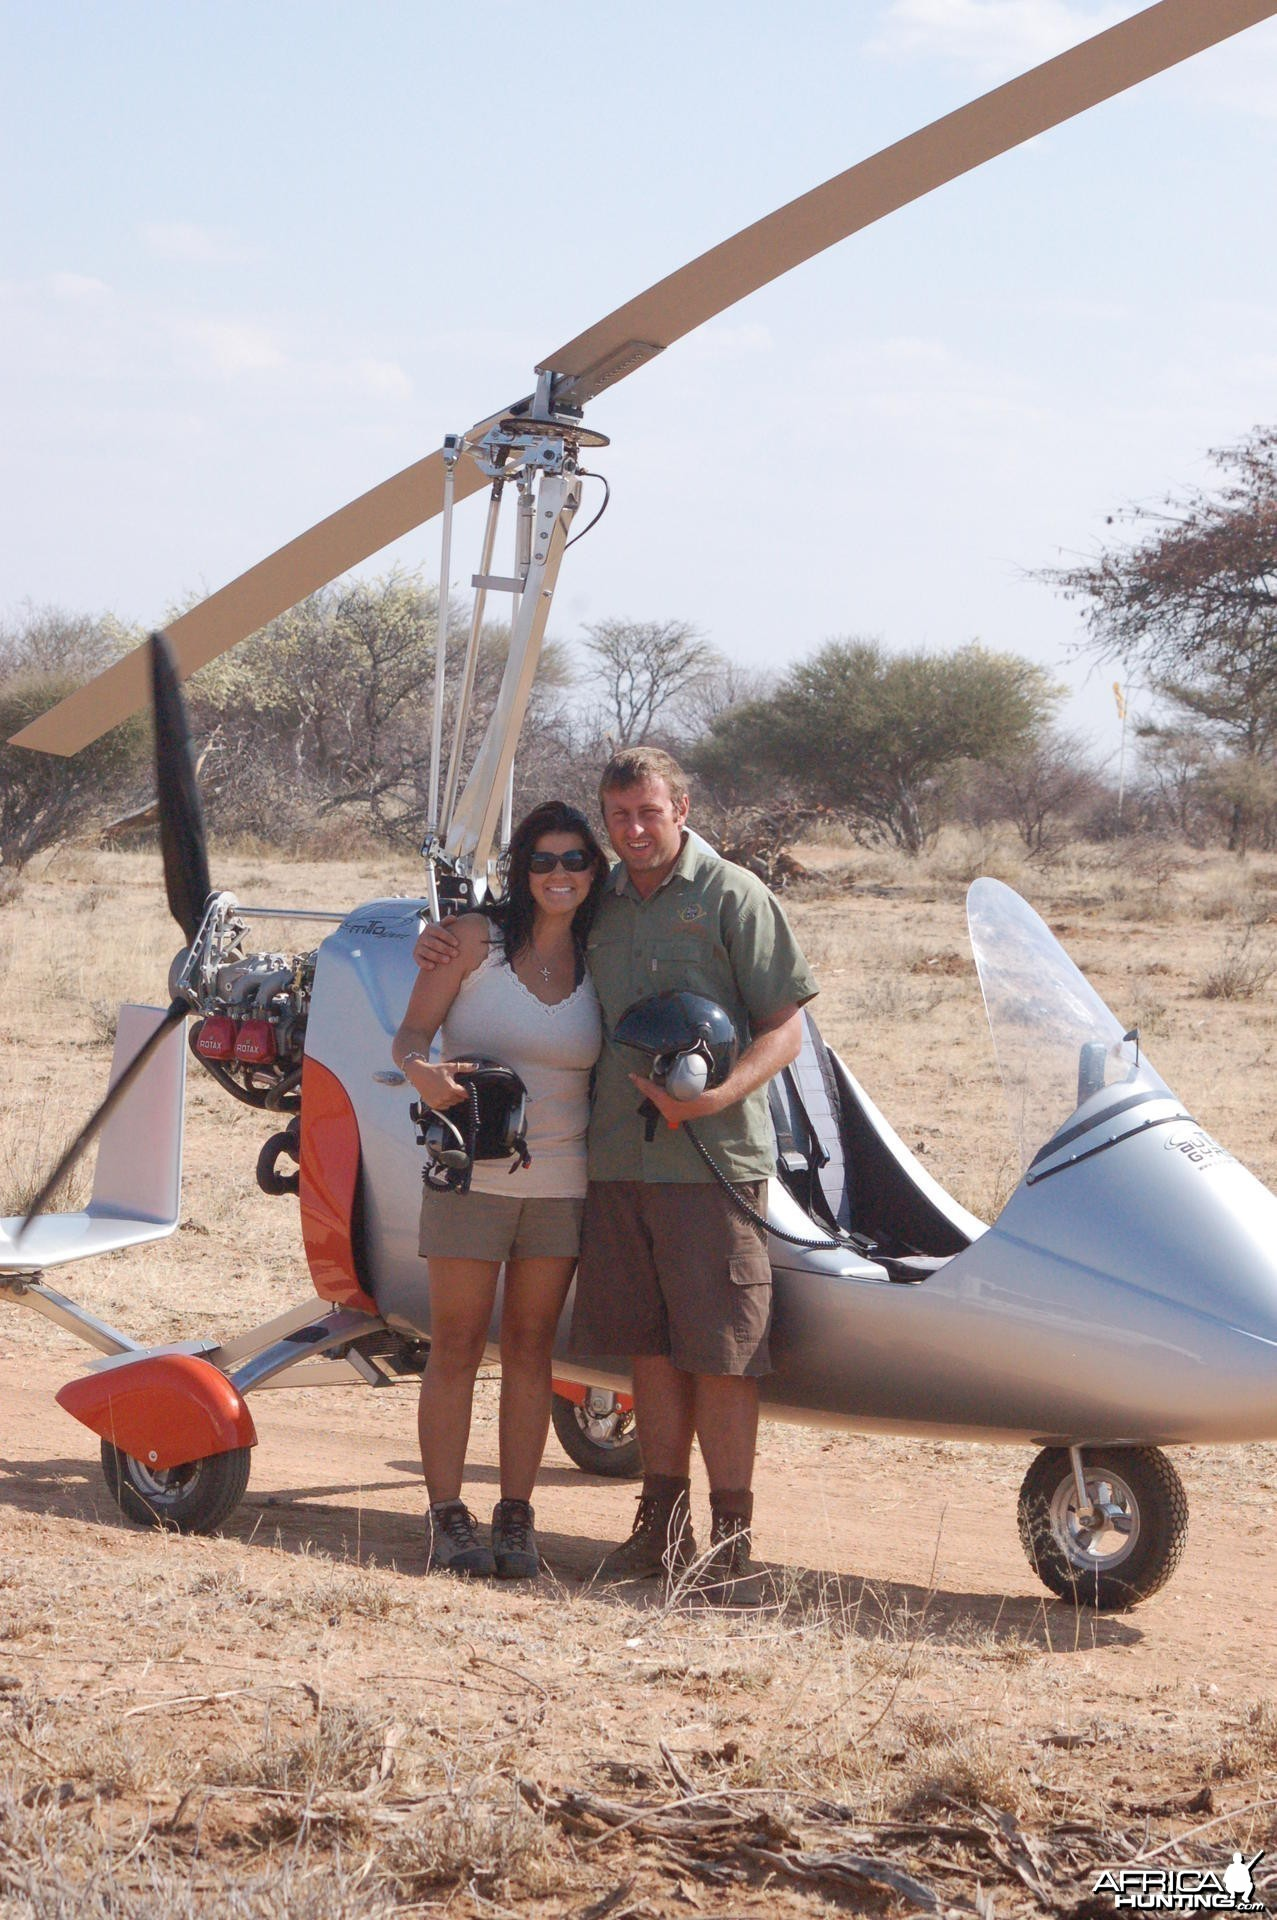 Gyro-copter flight in Namibia